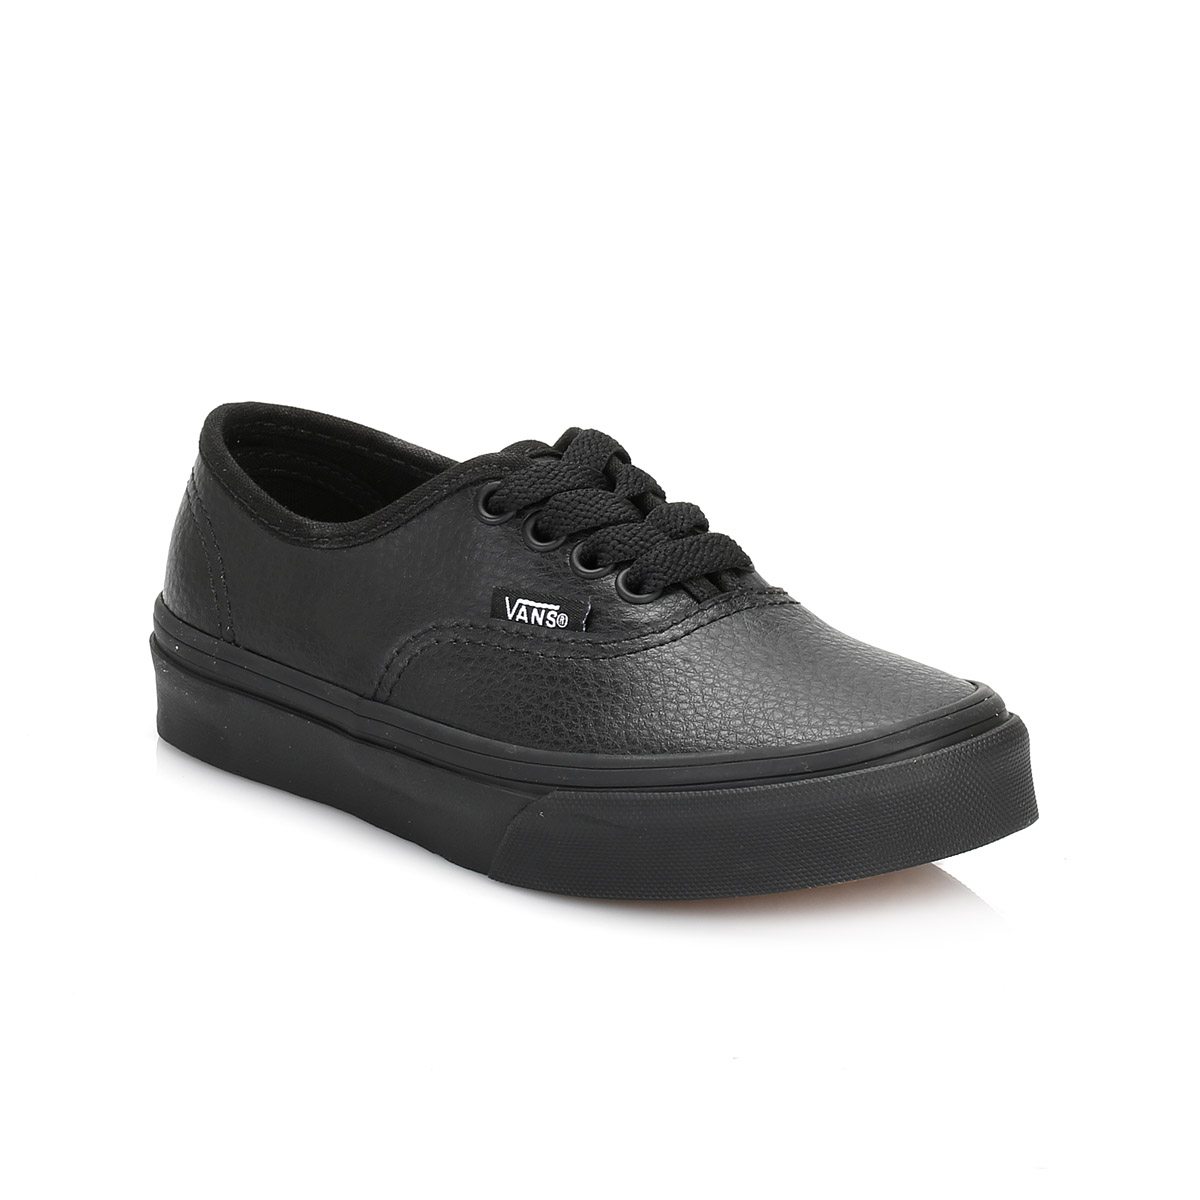 Vans Kids Girls Boys Black Leather Trainers Lace Up Casual ...